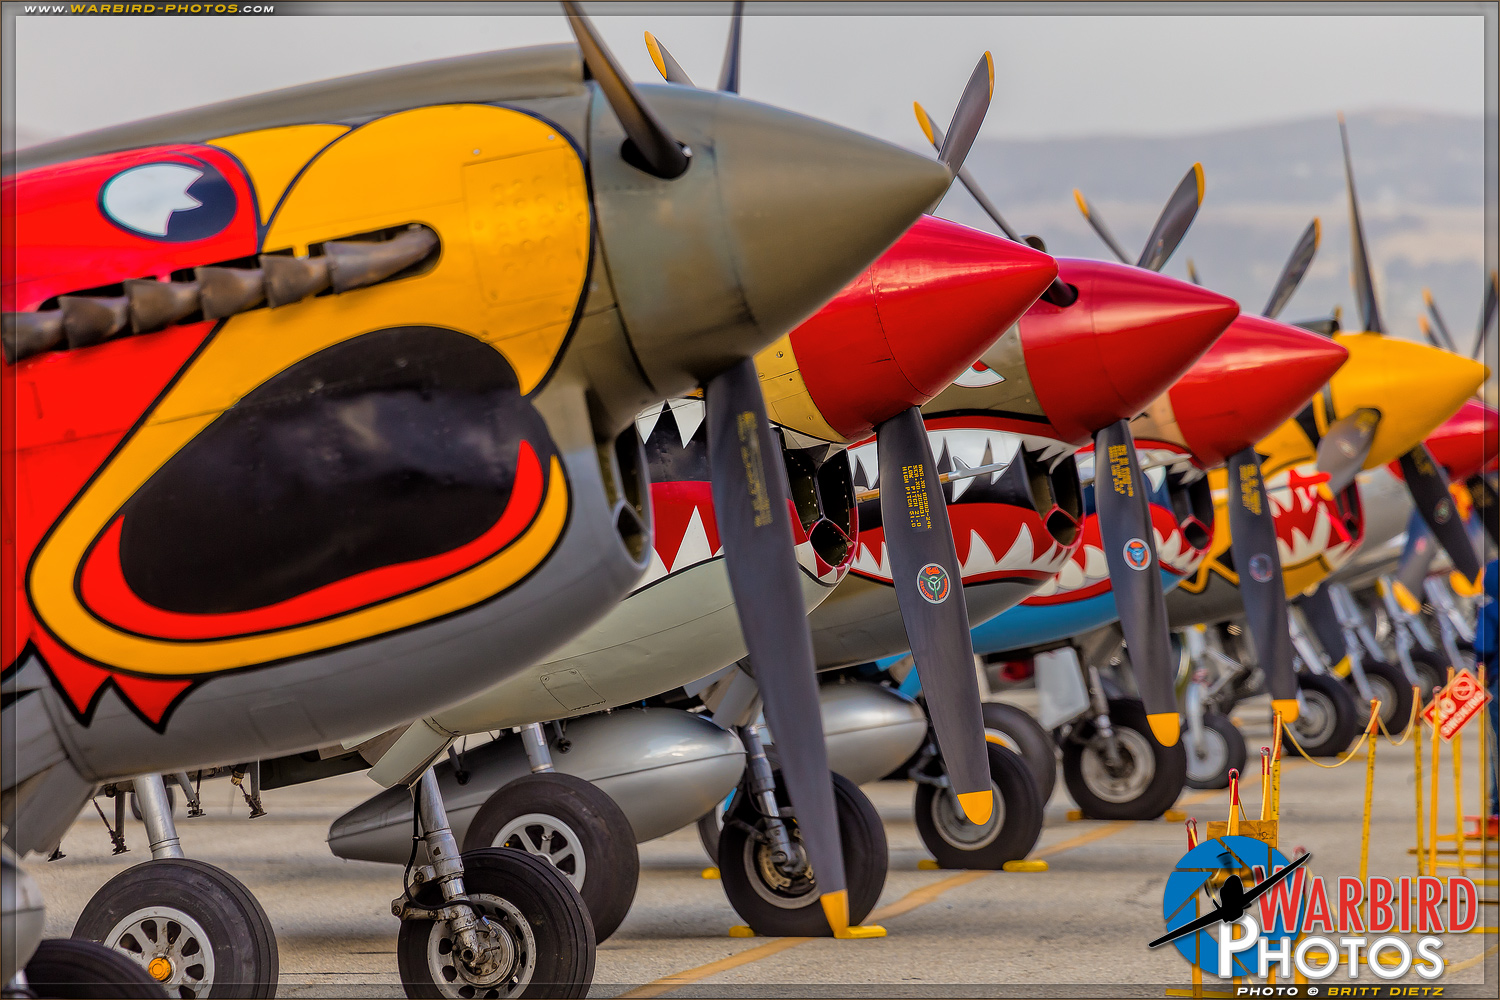 Planes of Fame Airshow 2016 - April 29-May 1, 2016